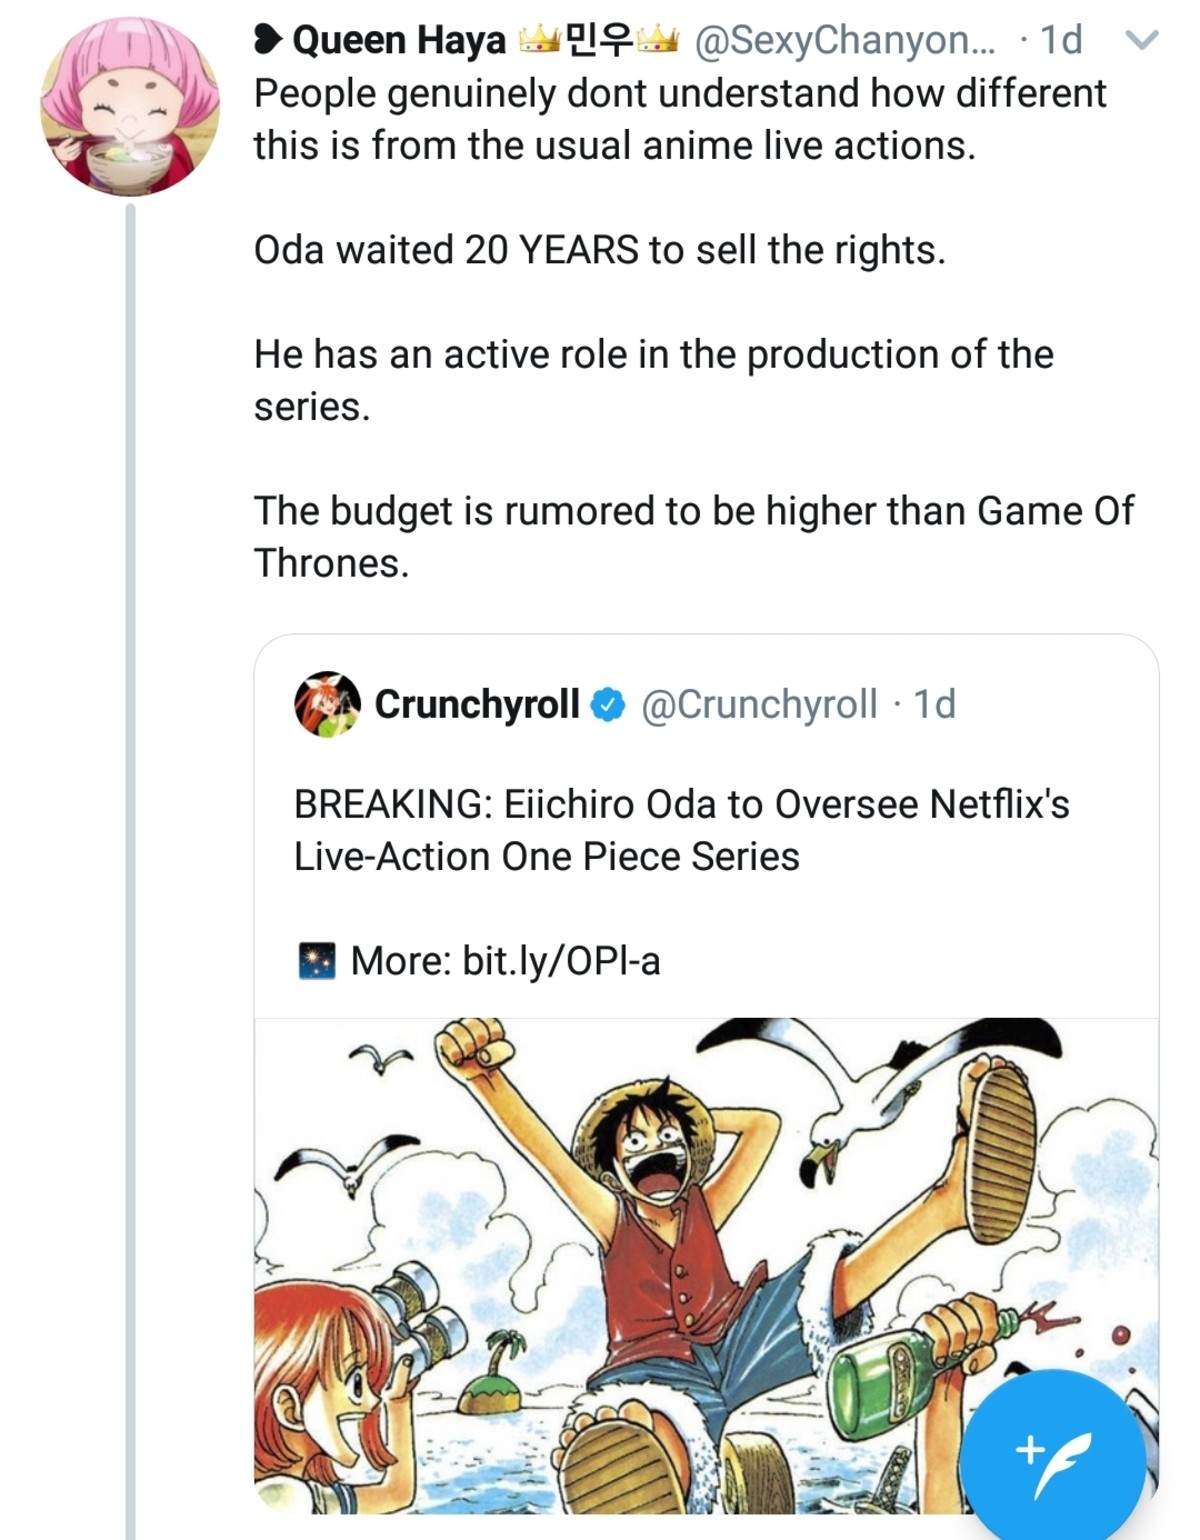 Netflix one piece. join list: onepiece (236 subs)Mention History.. >The staff seems to be racially diverse >Keep a Open mind >Not a carbon copy of the manga